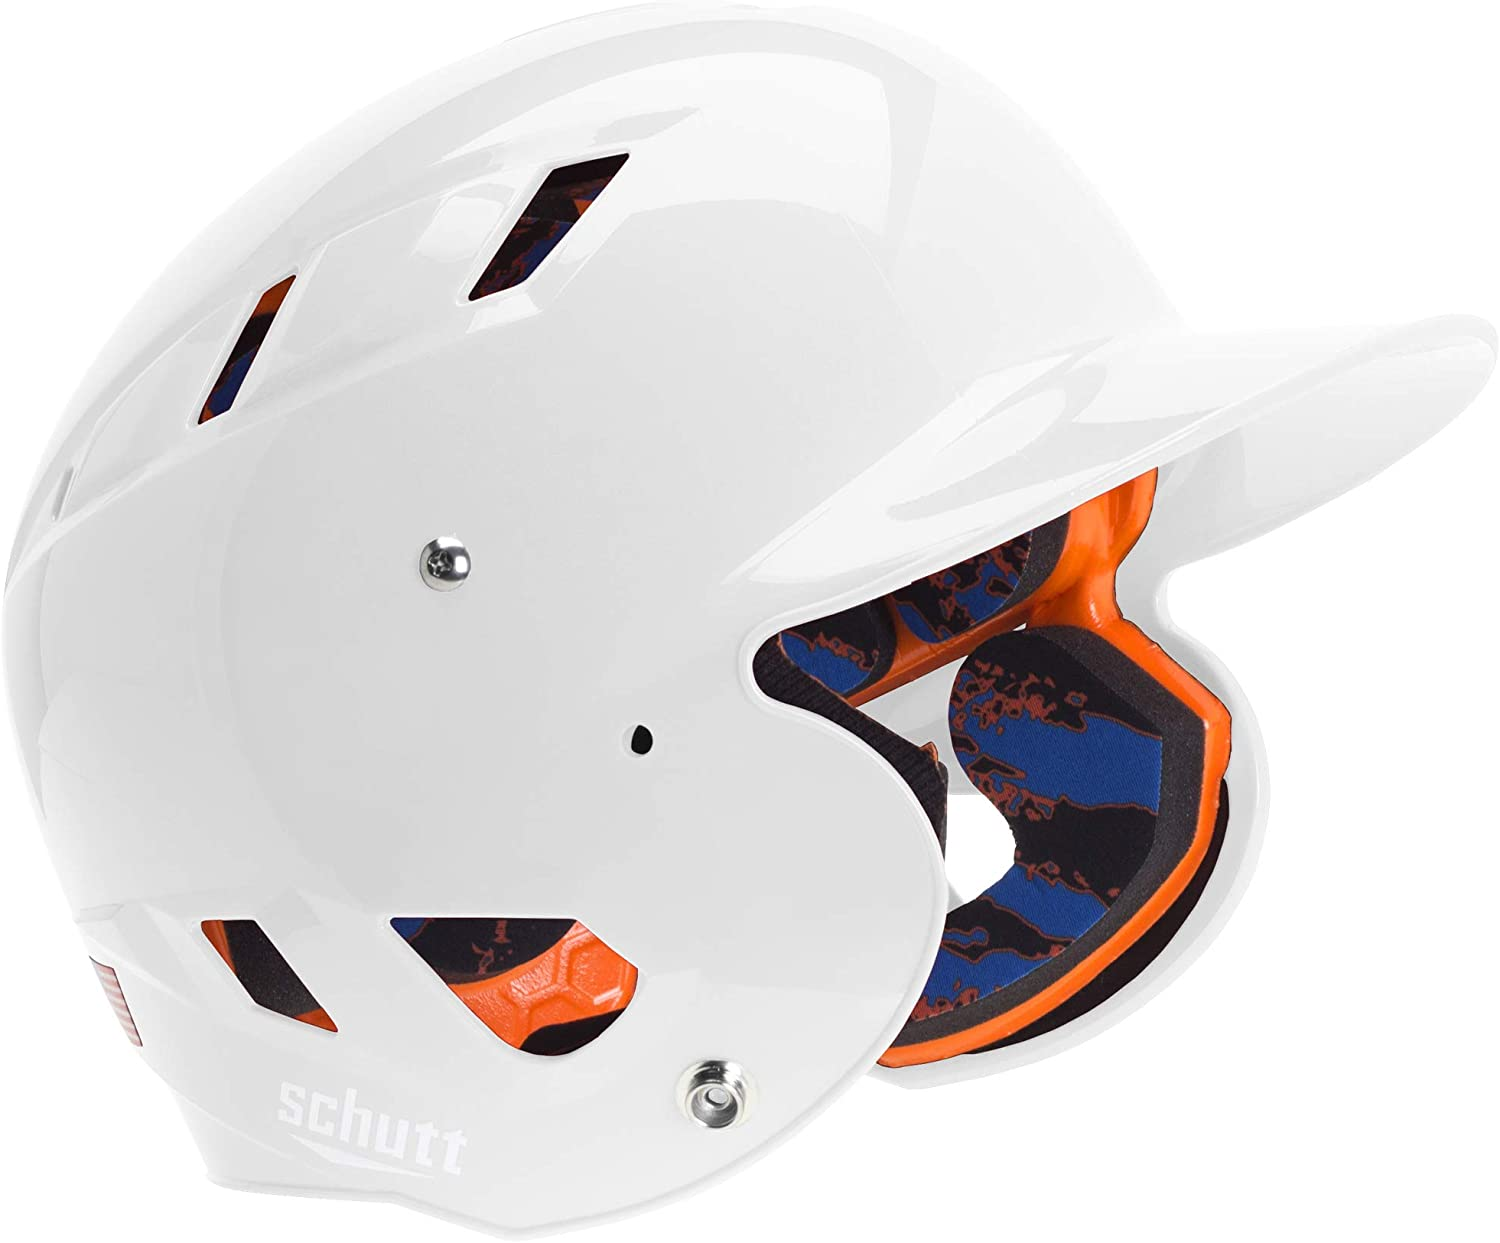 Schutt Sports Junior OSFM 3242 AIR 4.2 Batter's Helmet, High Gloss White